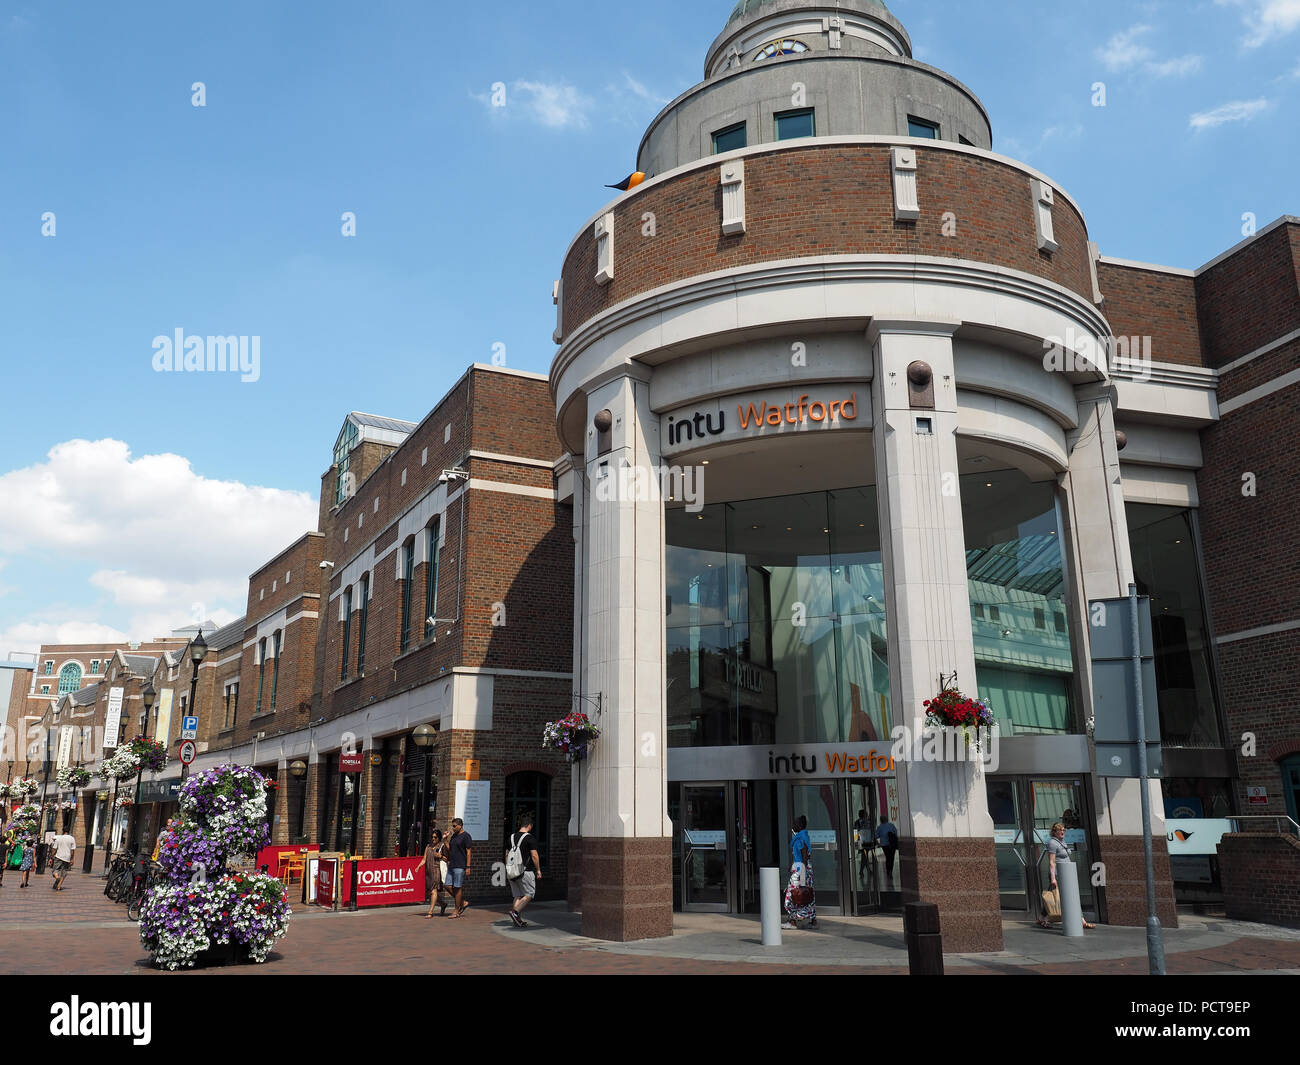 View of an entrance to the Intu shopping centre in Watford town centre. Stock Photo